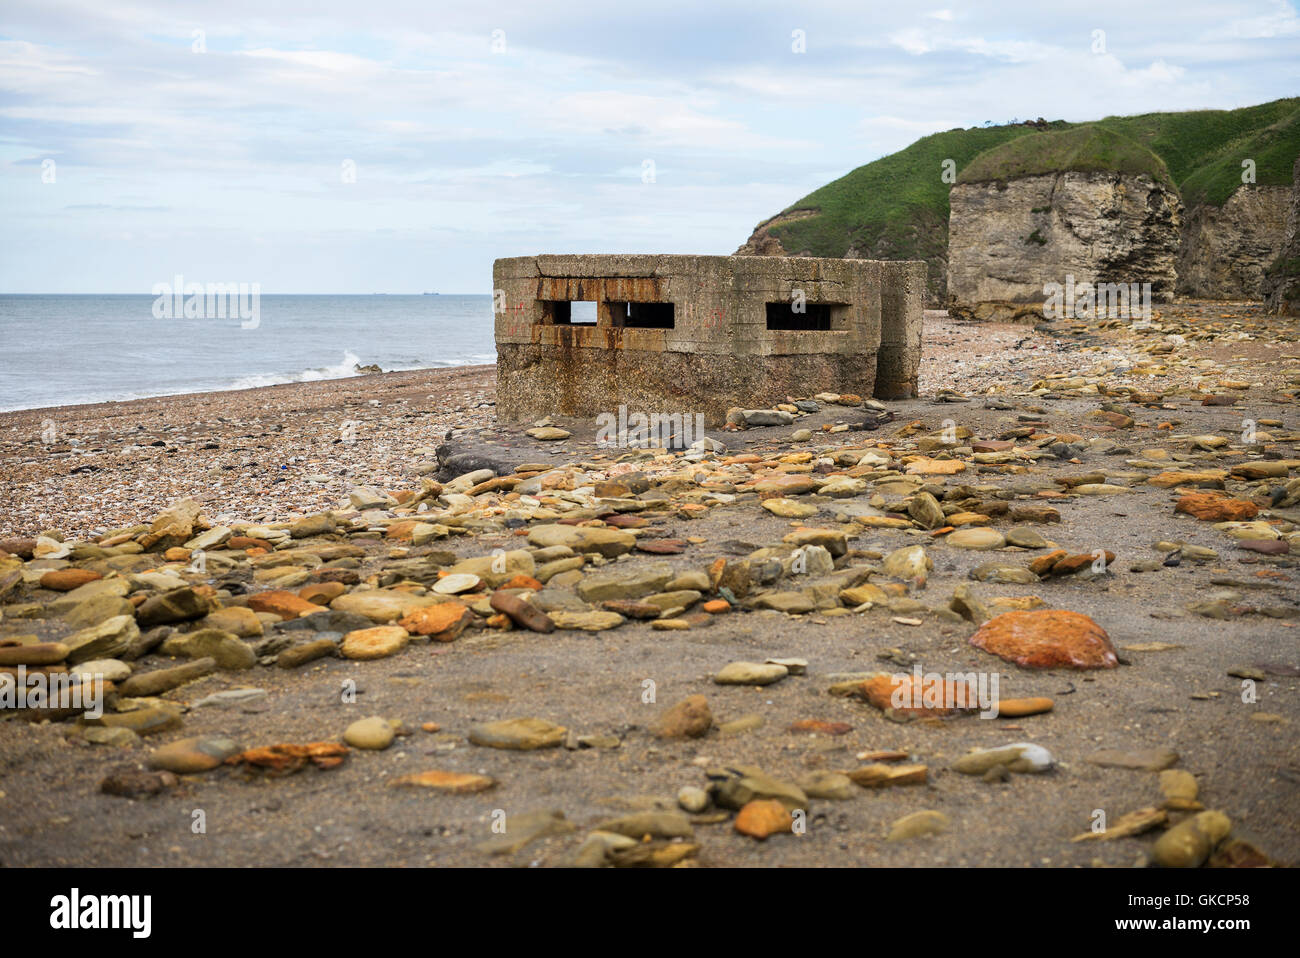 Ruined remains of a World War II concrete pillbox on Blast Beach, Nose's Point, Dawdon, Seaham, County Durham, - Stock Image